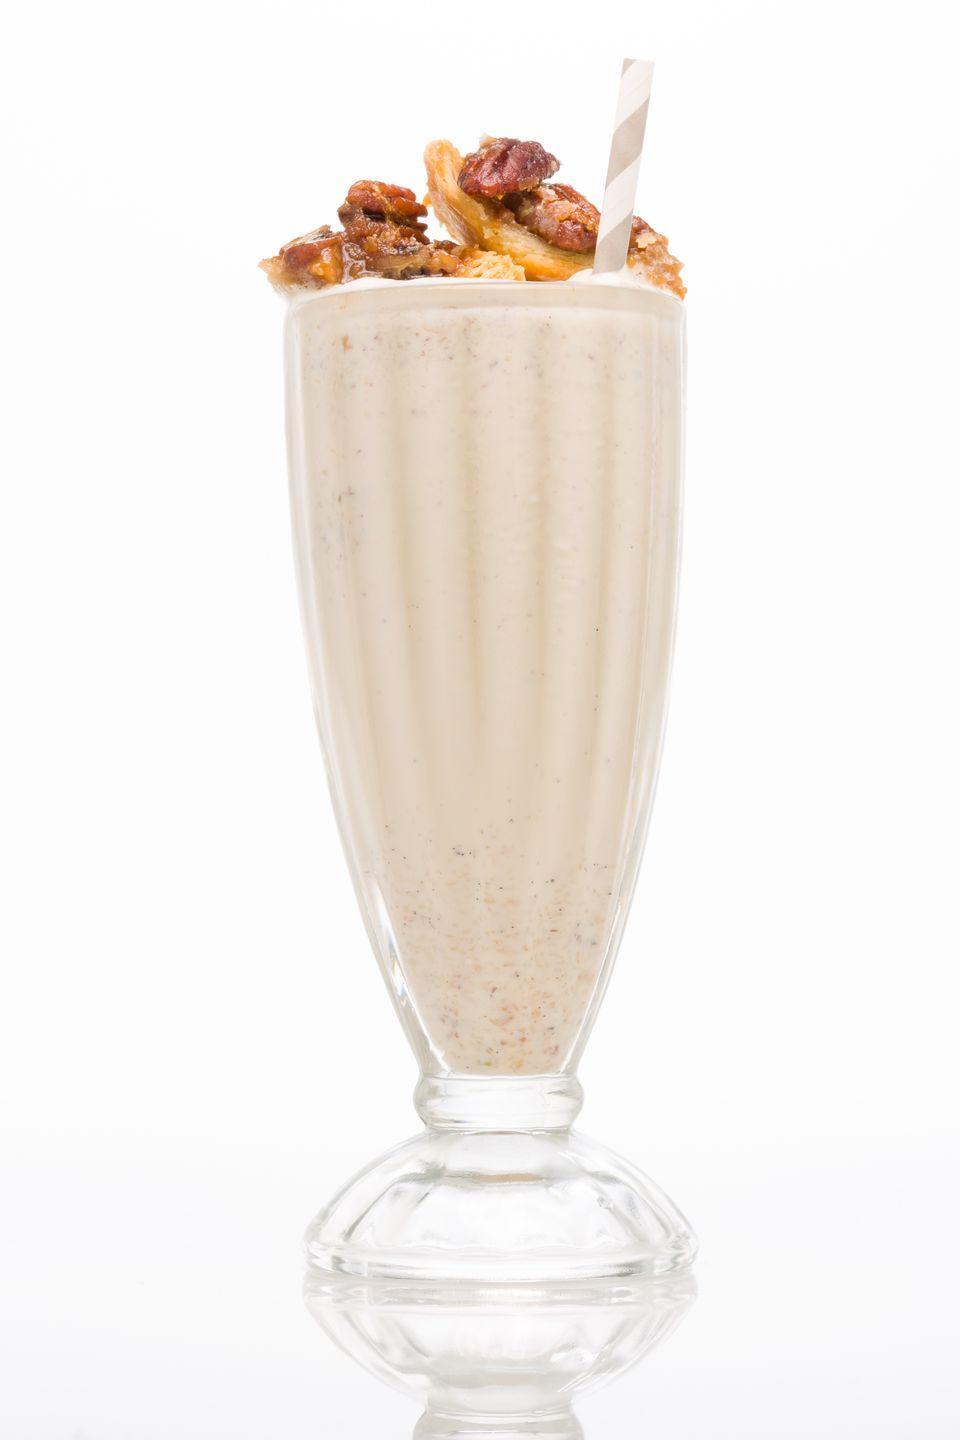 "<p>This is the one time you want to make sure you don't eat all the pecan pie.</p><p>Get the recipe from <a href=""https://www.delish.com/cooking/recipe-ideas/recipes/a44645/leftover-pecan-pie-bourbon-shake-recipe/"" rel=""nofollow noopener"" target=""_blank"" data-ylk=""slk:Delish"" class=""link rapid-noclick-resp"">Delish</a>.</p>"